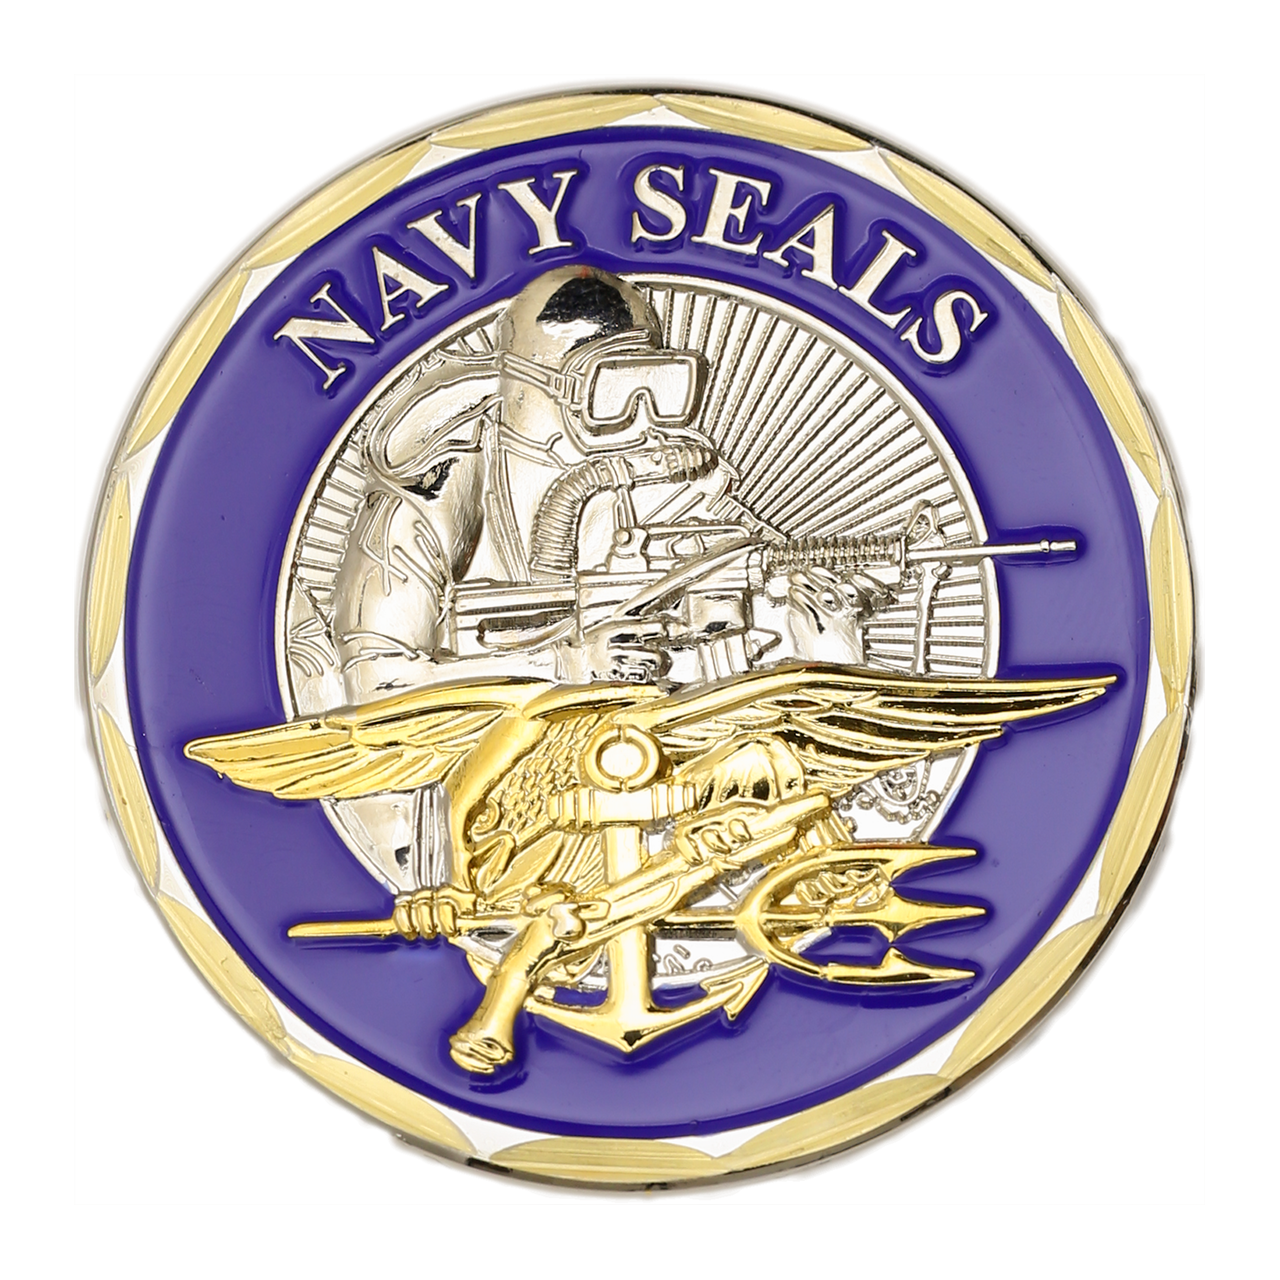 whiskey challenge coin